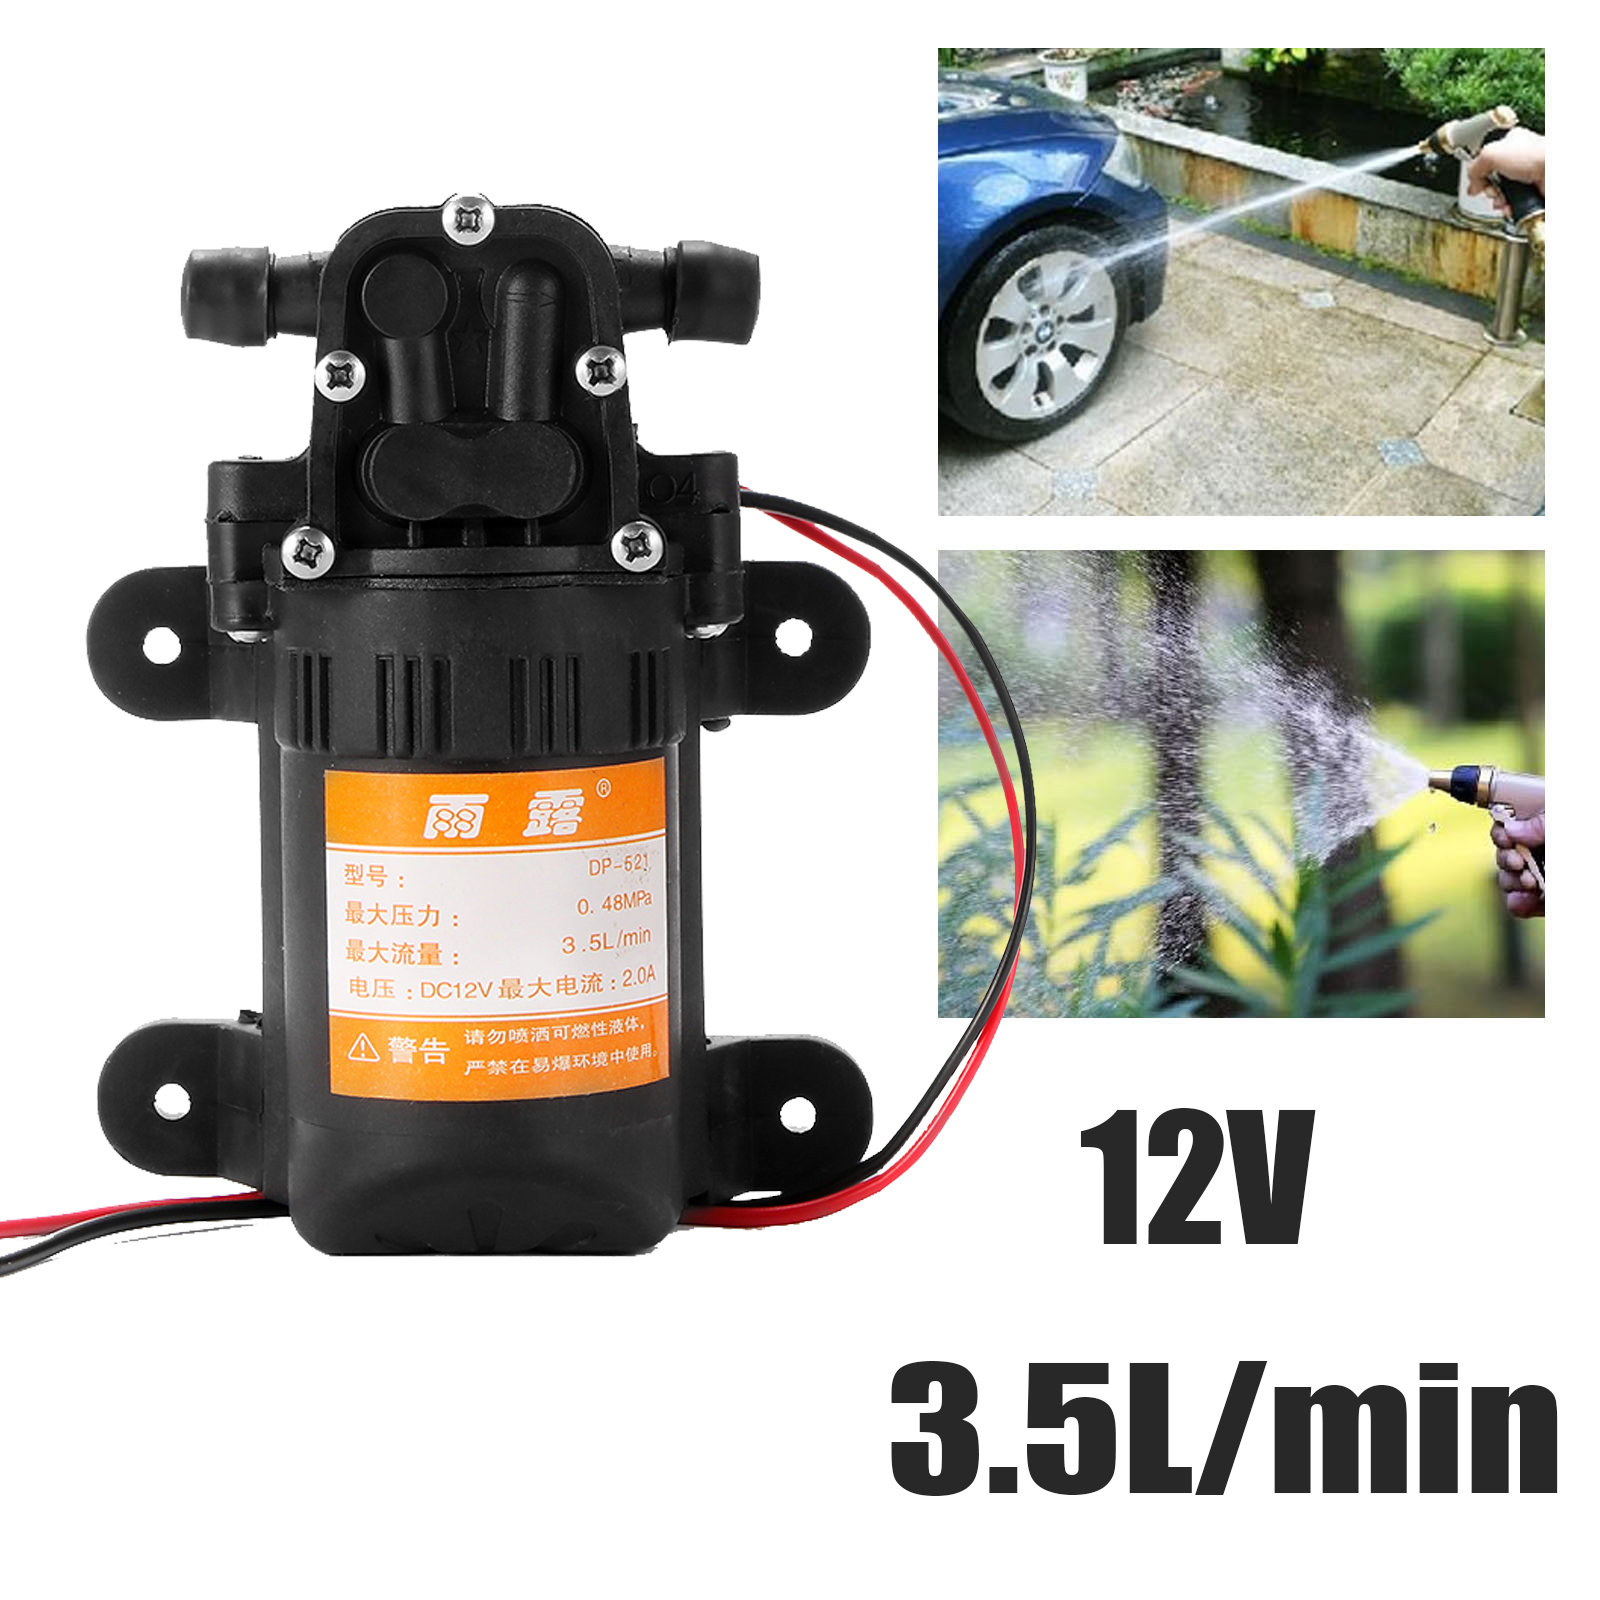 US $9 59 40% OFF|1pc DC 12V Black Water Pump 70 PSI Agricultural Electric  Diaphragm Water Sprayer Pumps 3 5L / Min For Garden Caravan Tool-in Pumps